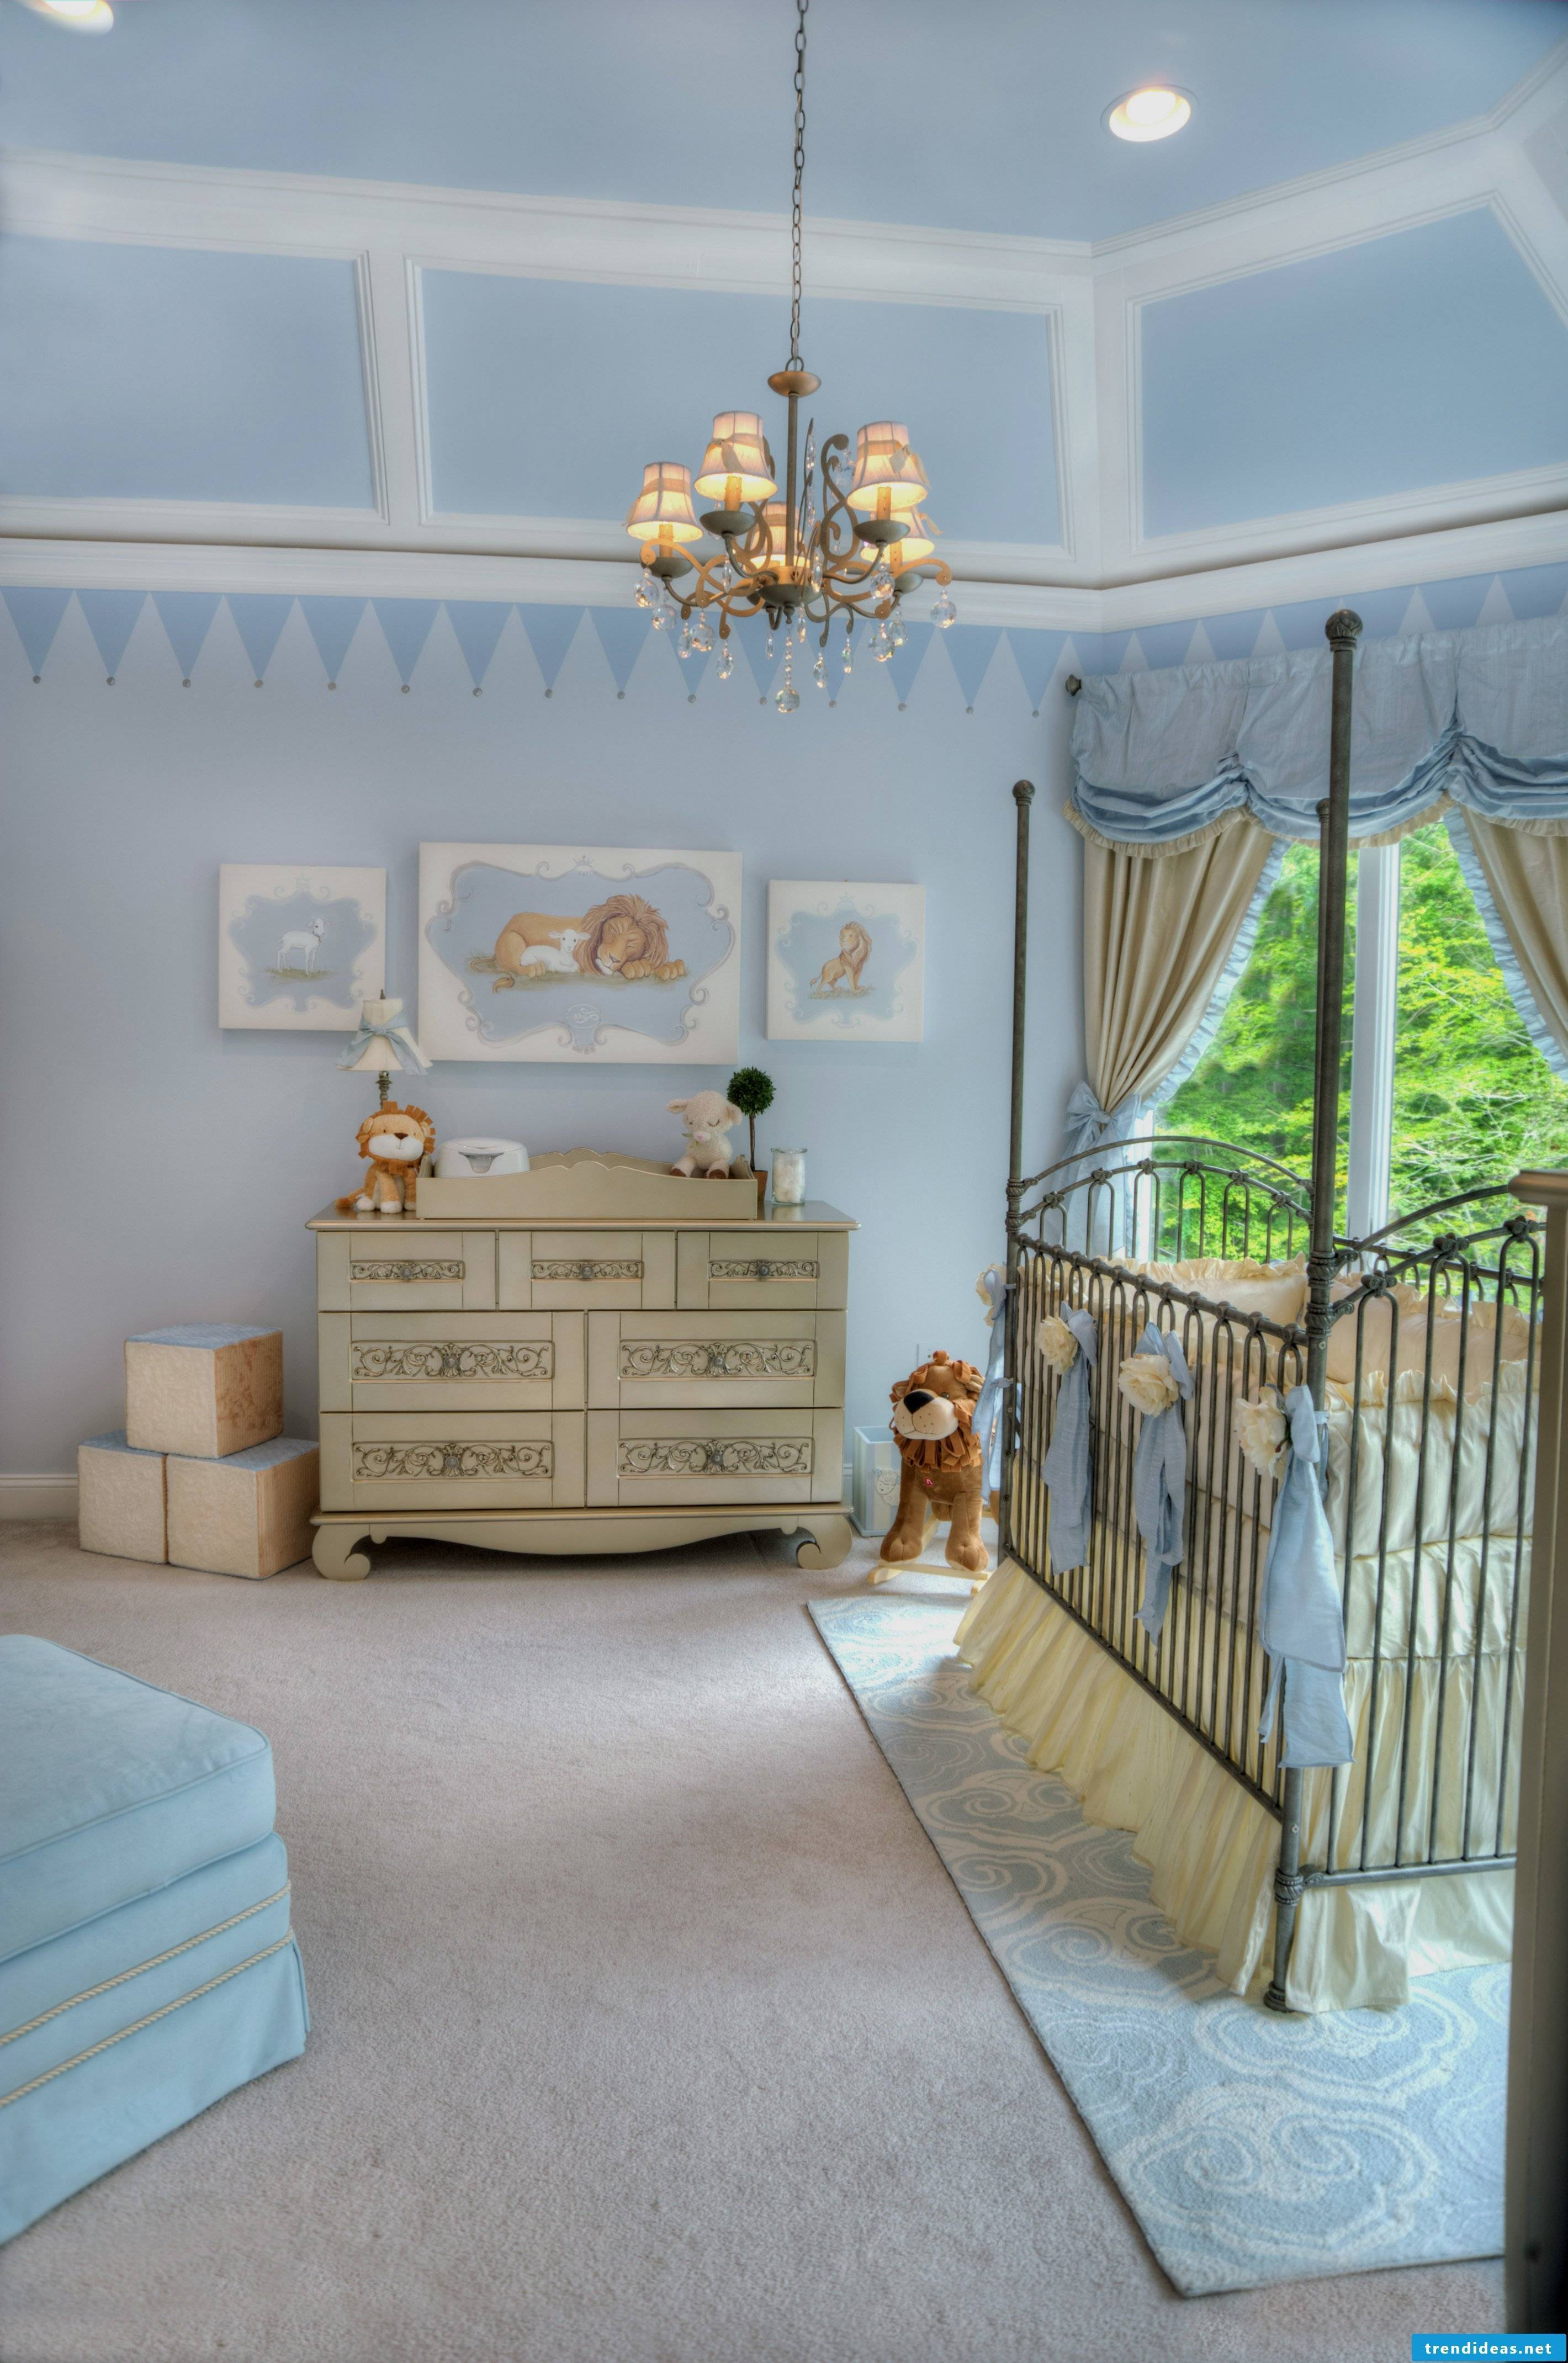 Baby Blue - the chic nursery for the baby boy